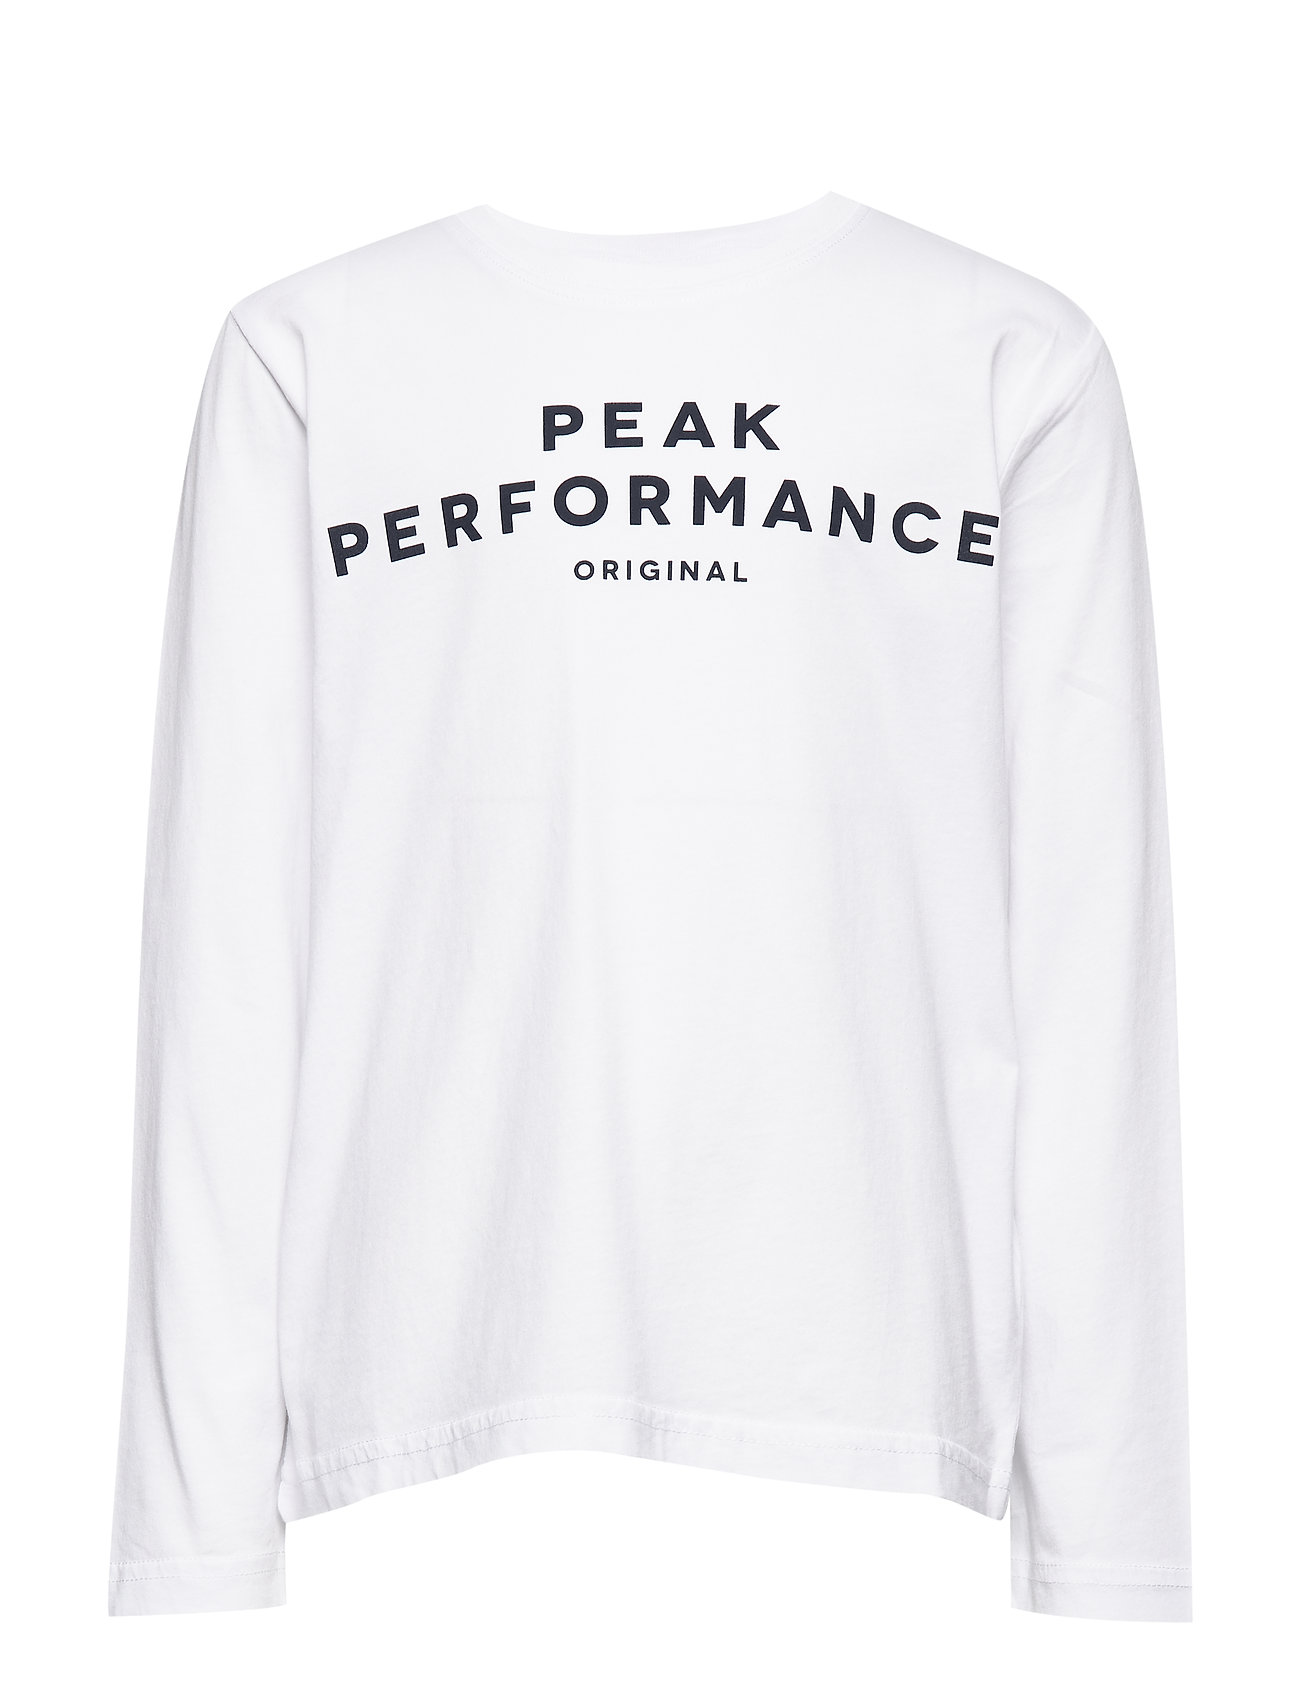 Peak Performance JR ORIG LS - WHITE